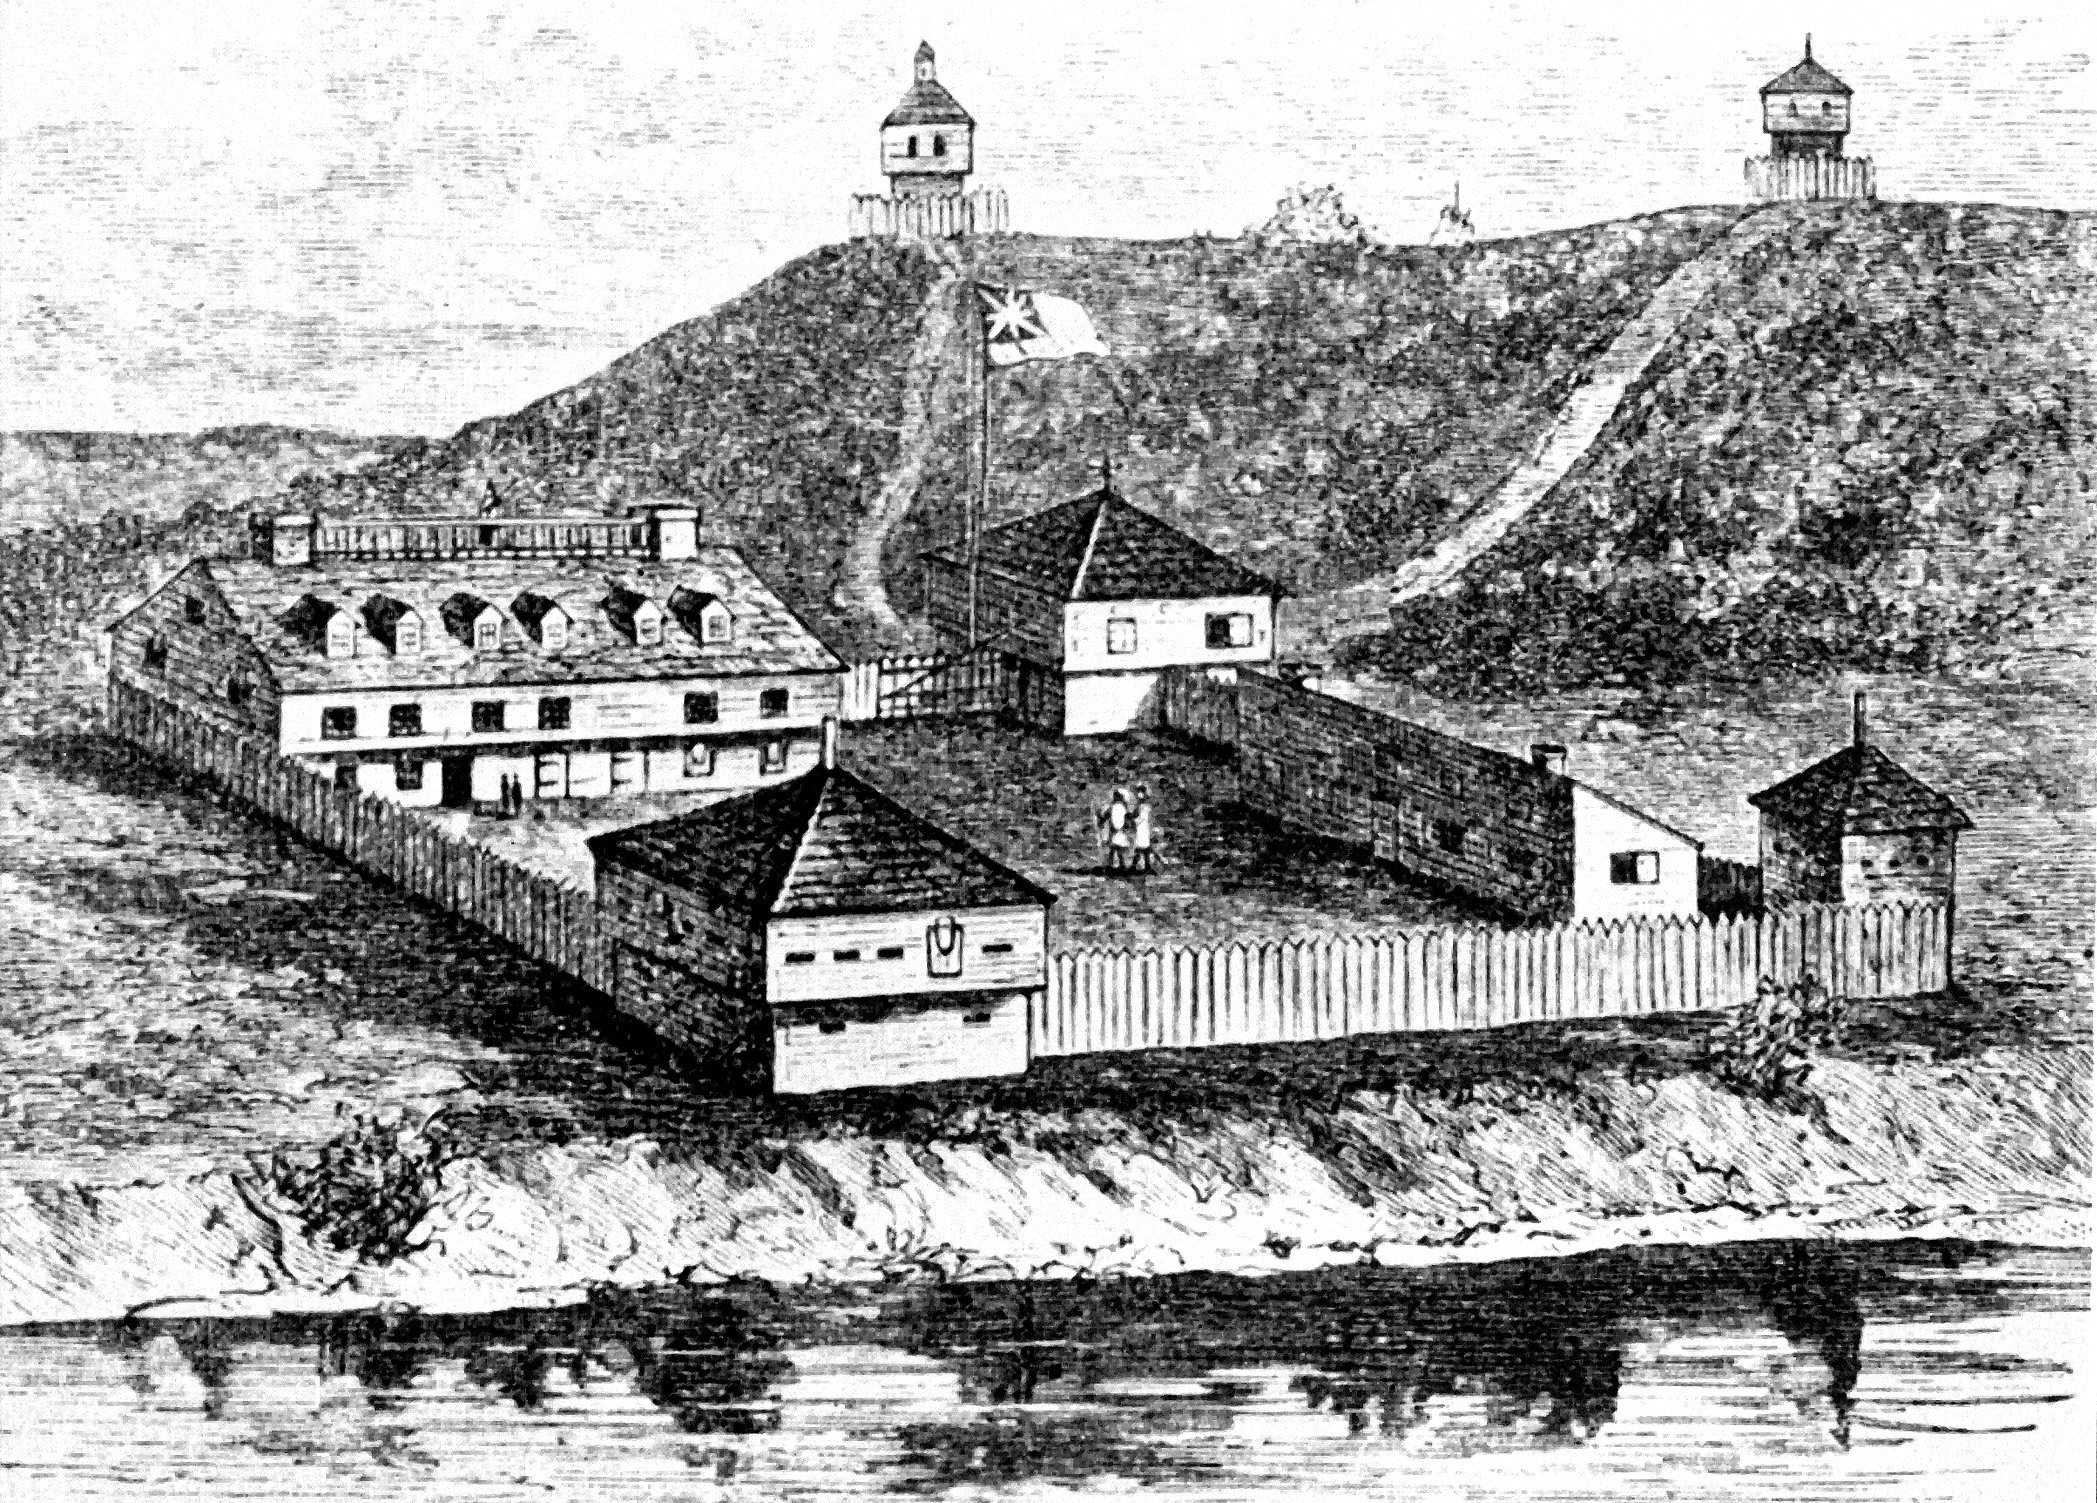 Drawing of historic Fort Halifax